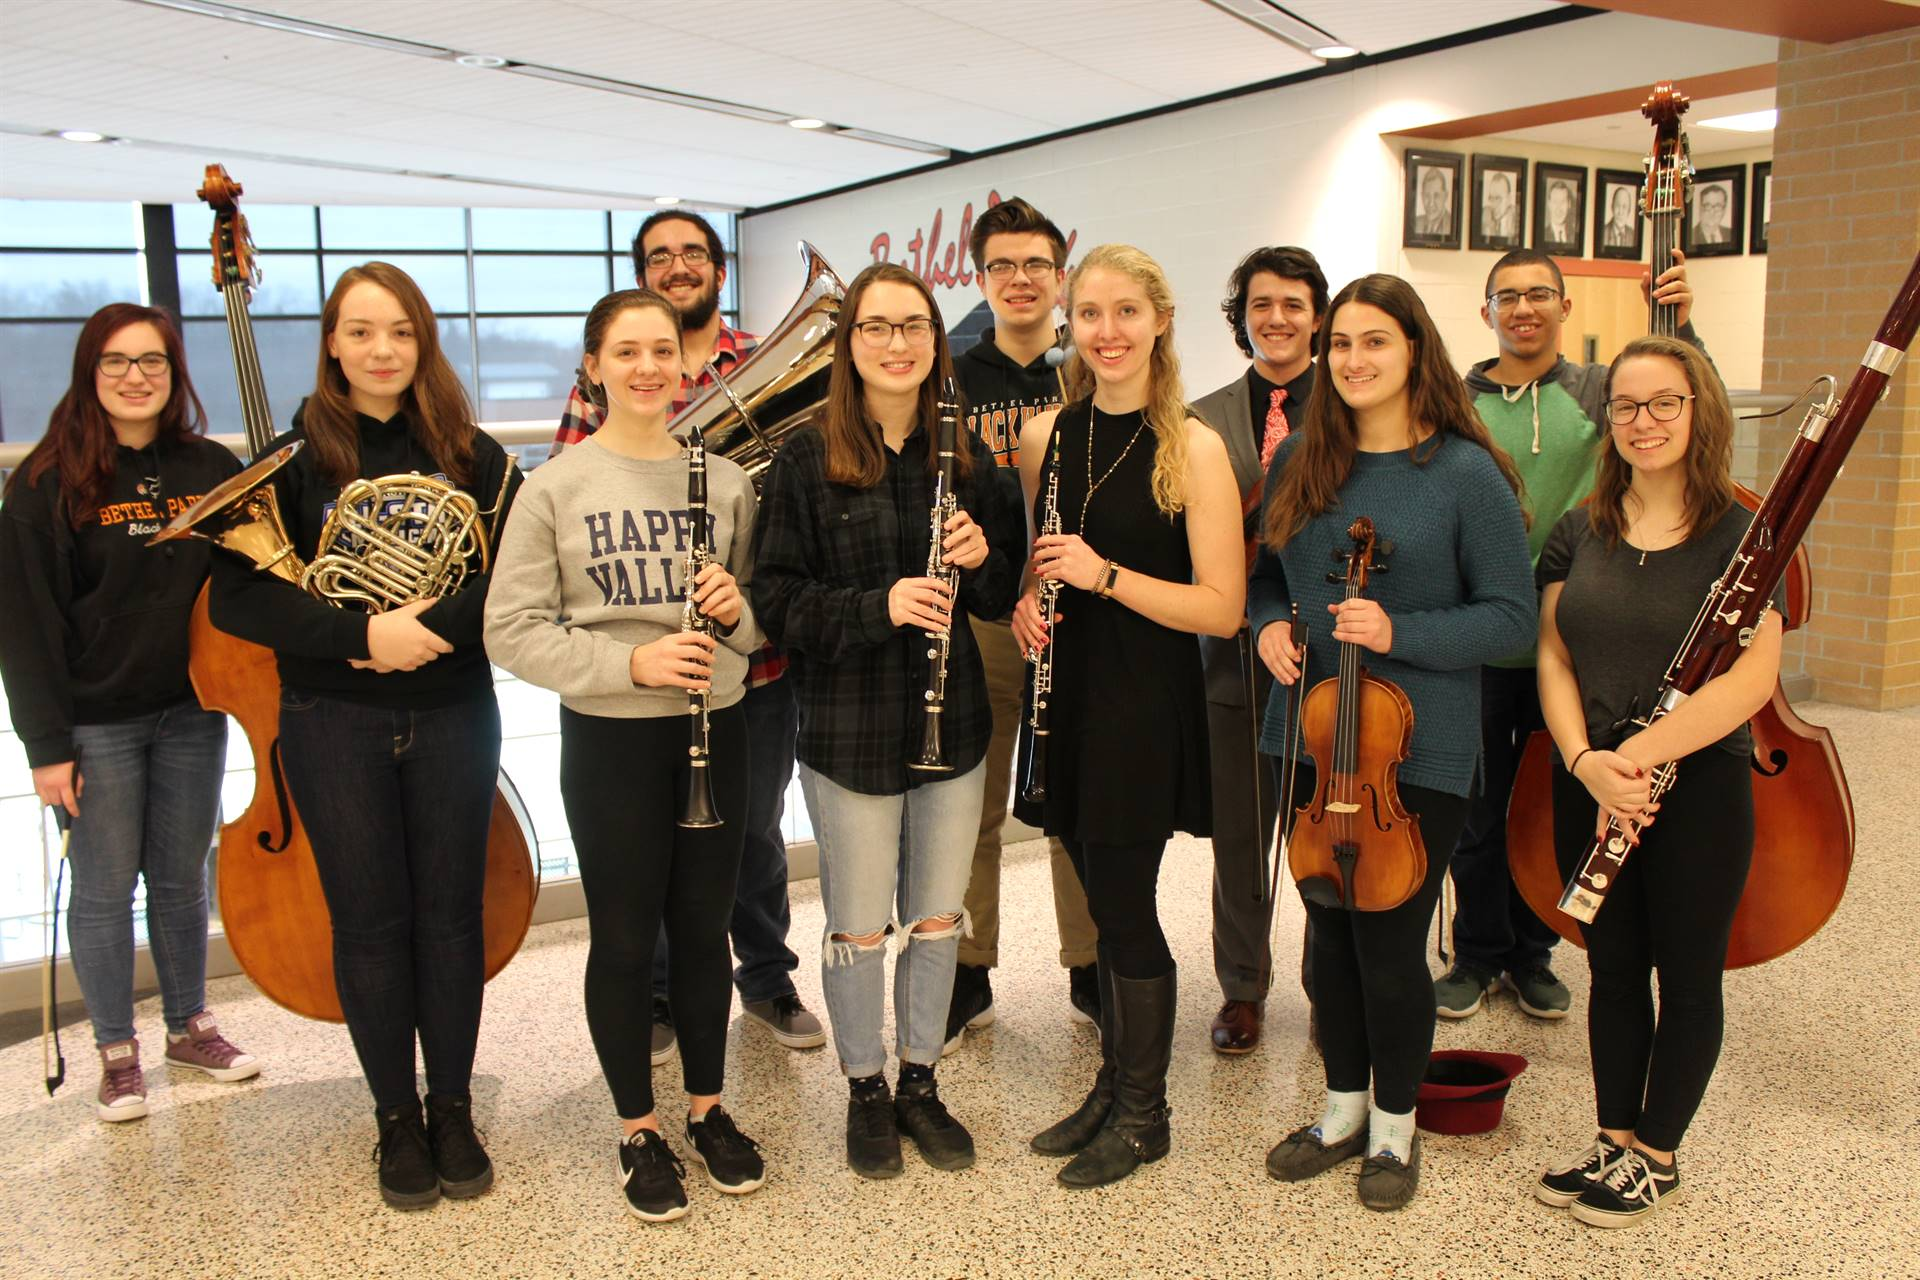 11 of the 13 BPHS District Orchestra musicians